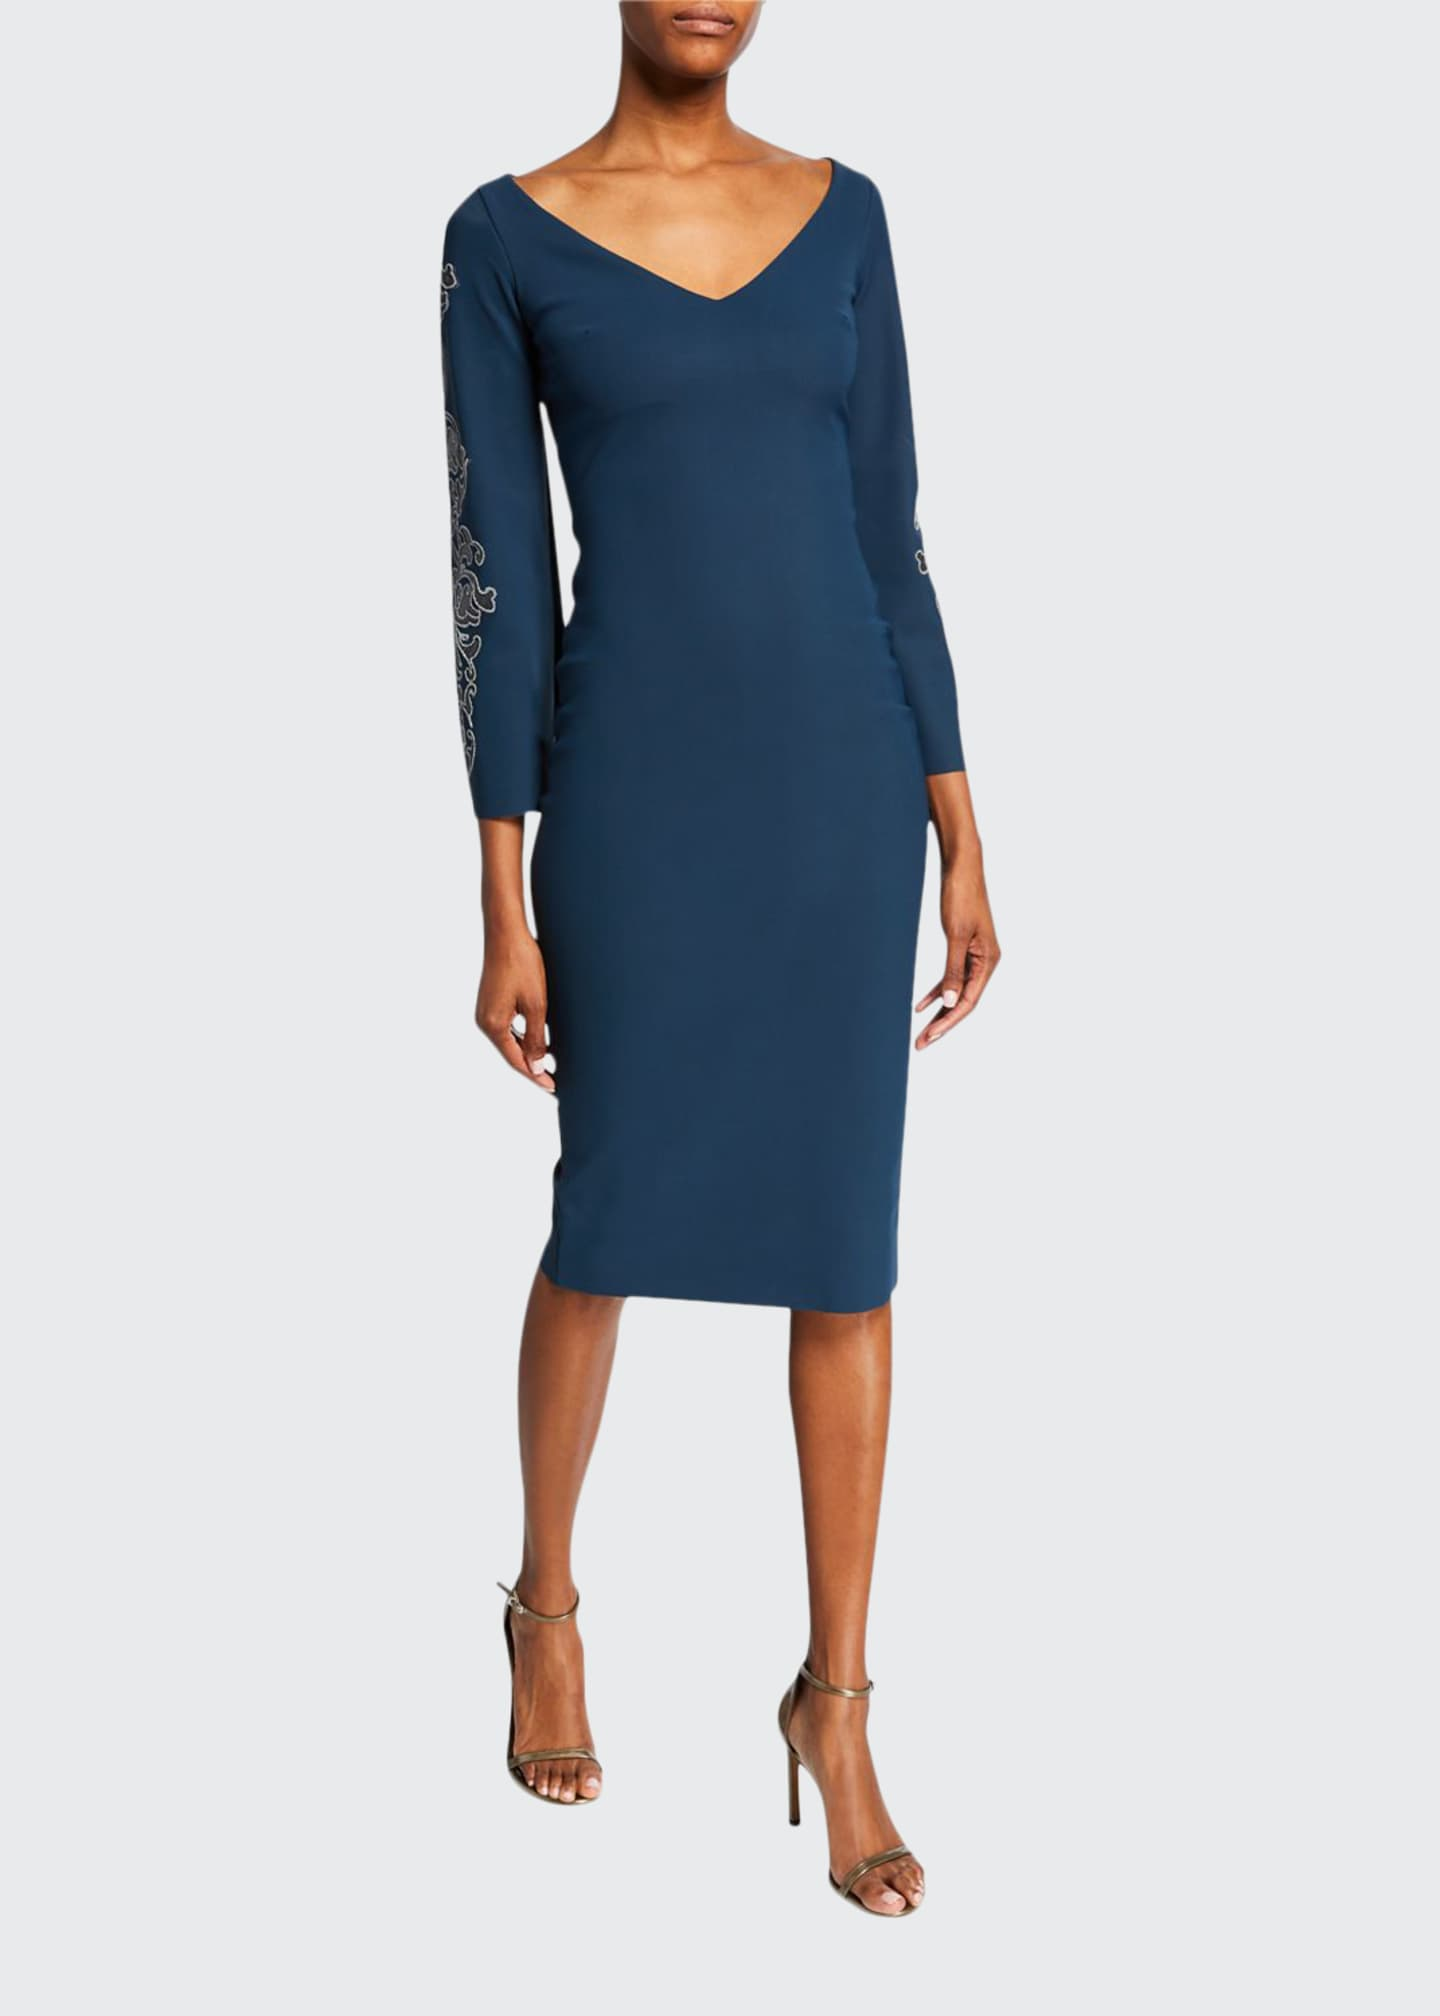 Chiara Boni La Petite Robe V-Neck Long-Sleeve Sheath